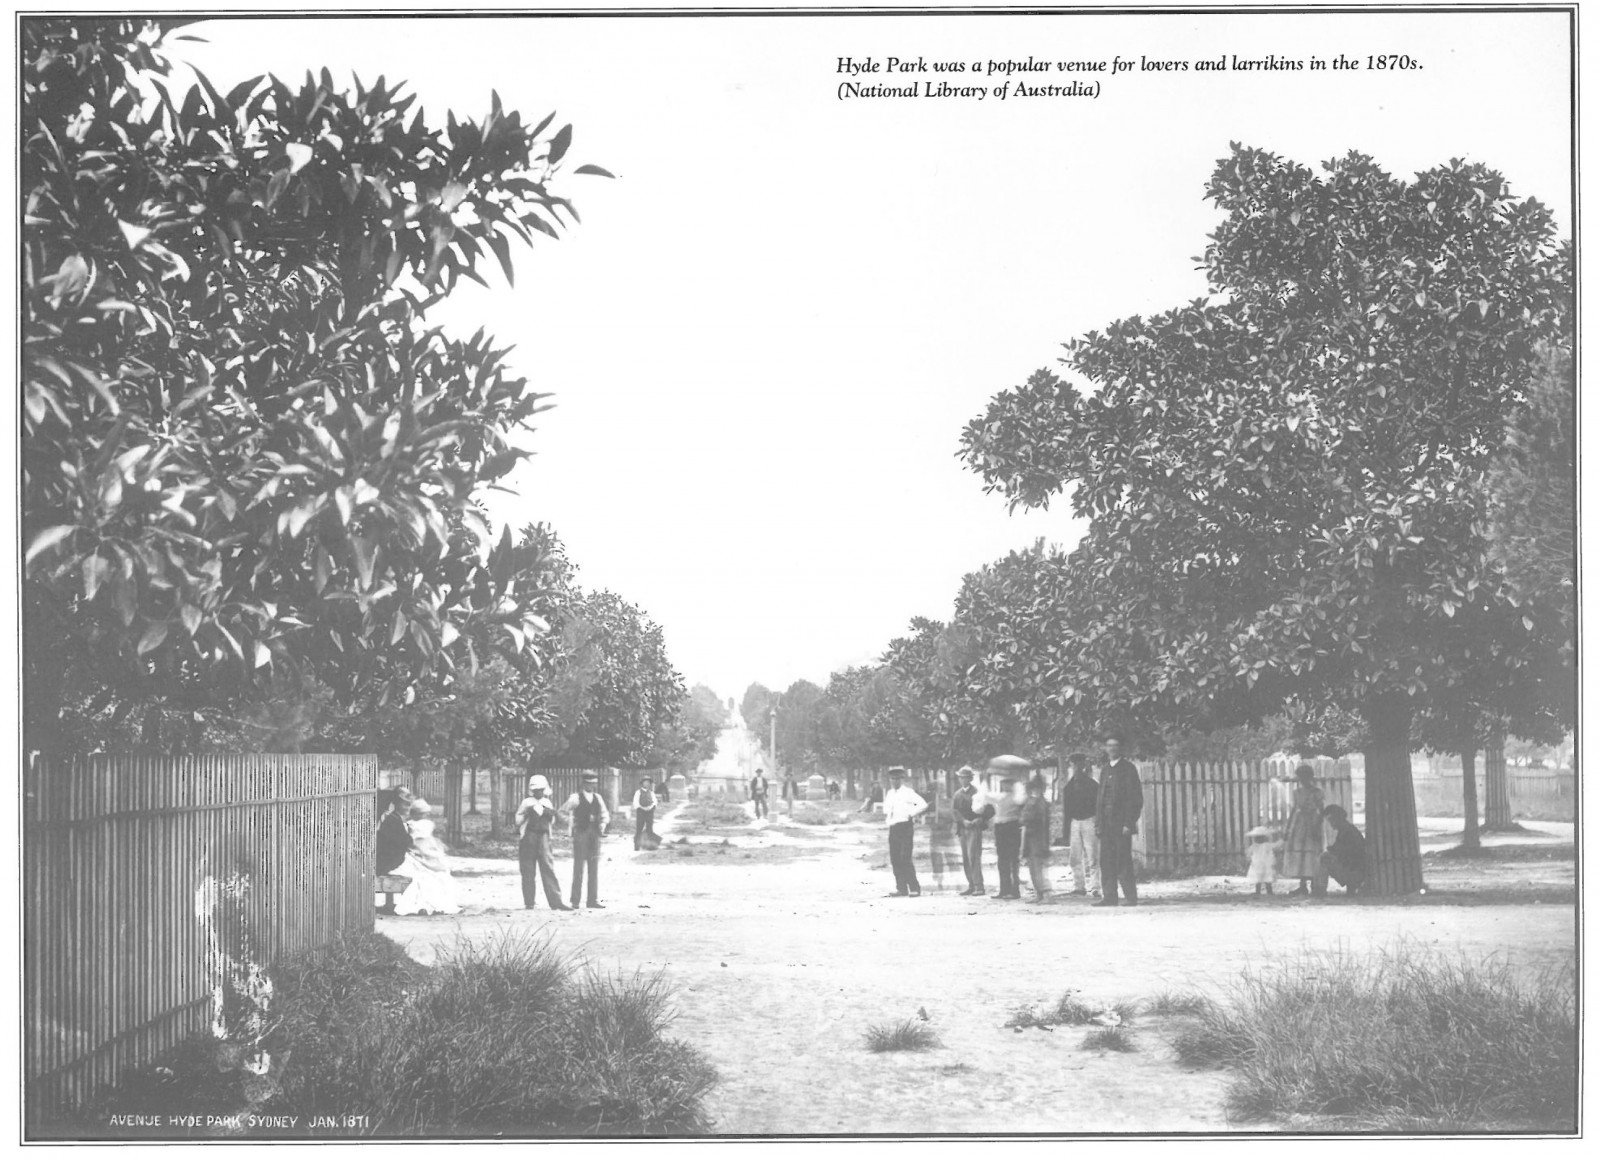 Early Moreton Bay Figs in Hyde Park January 1871 (Source : National Library of Australia)